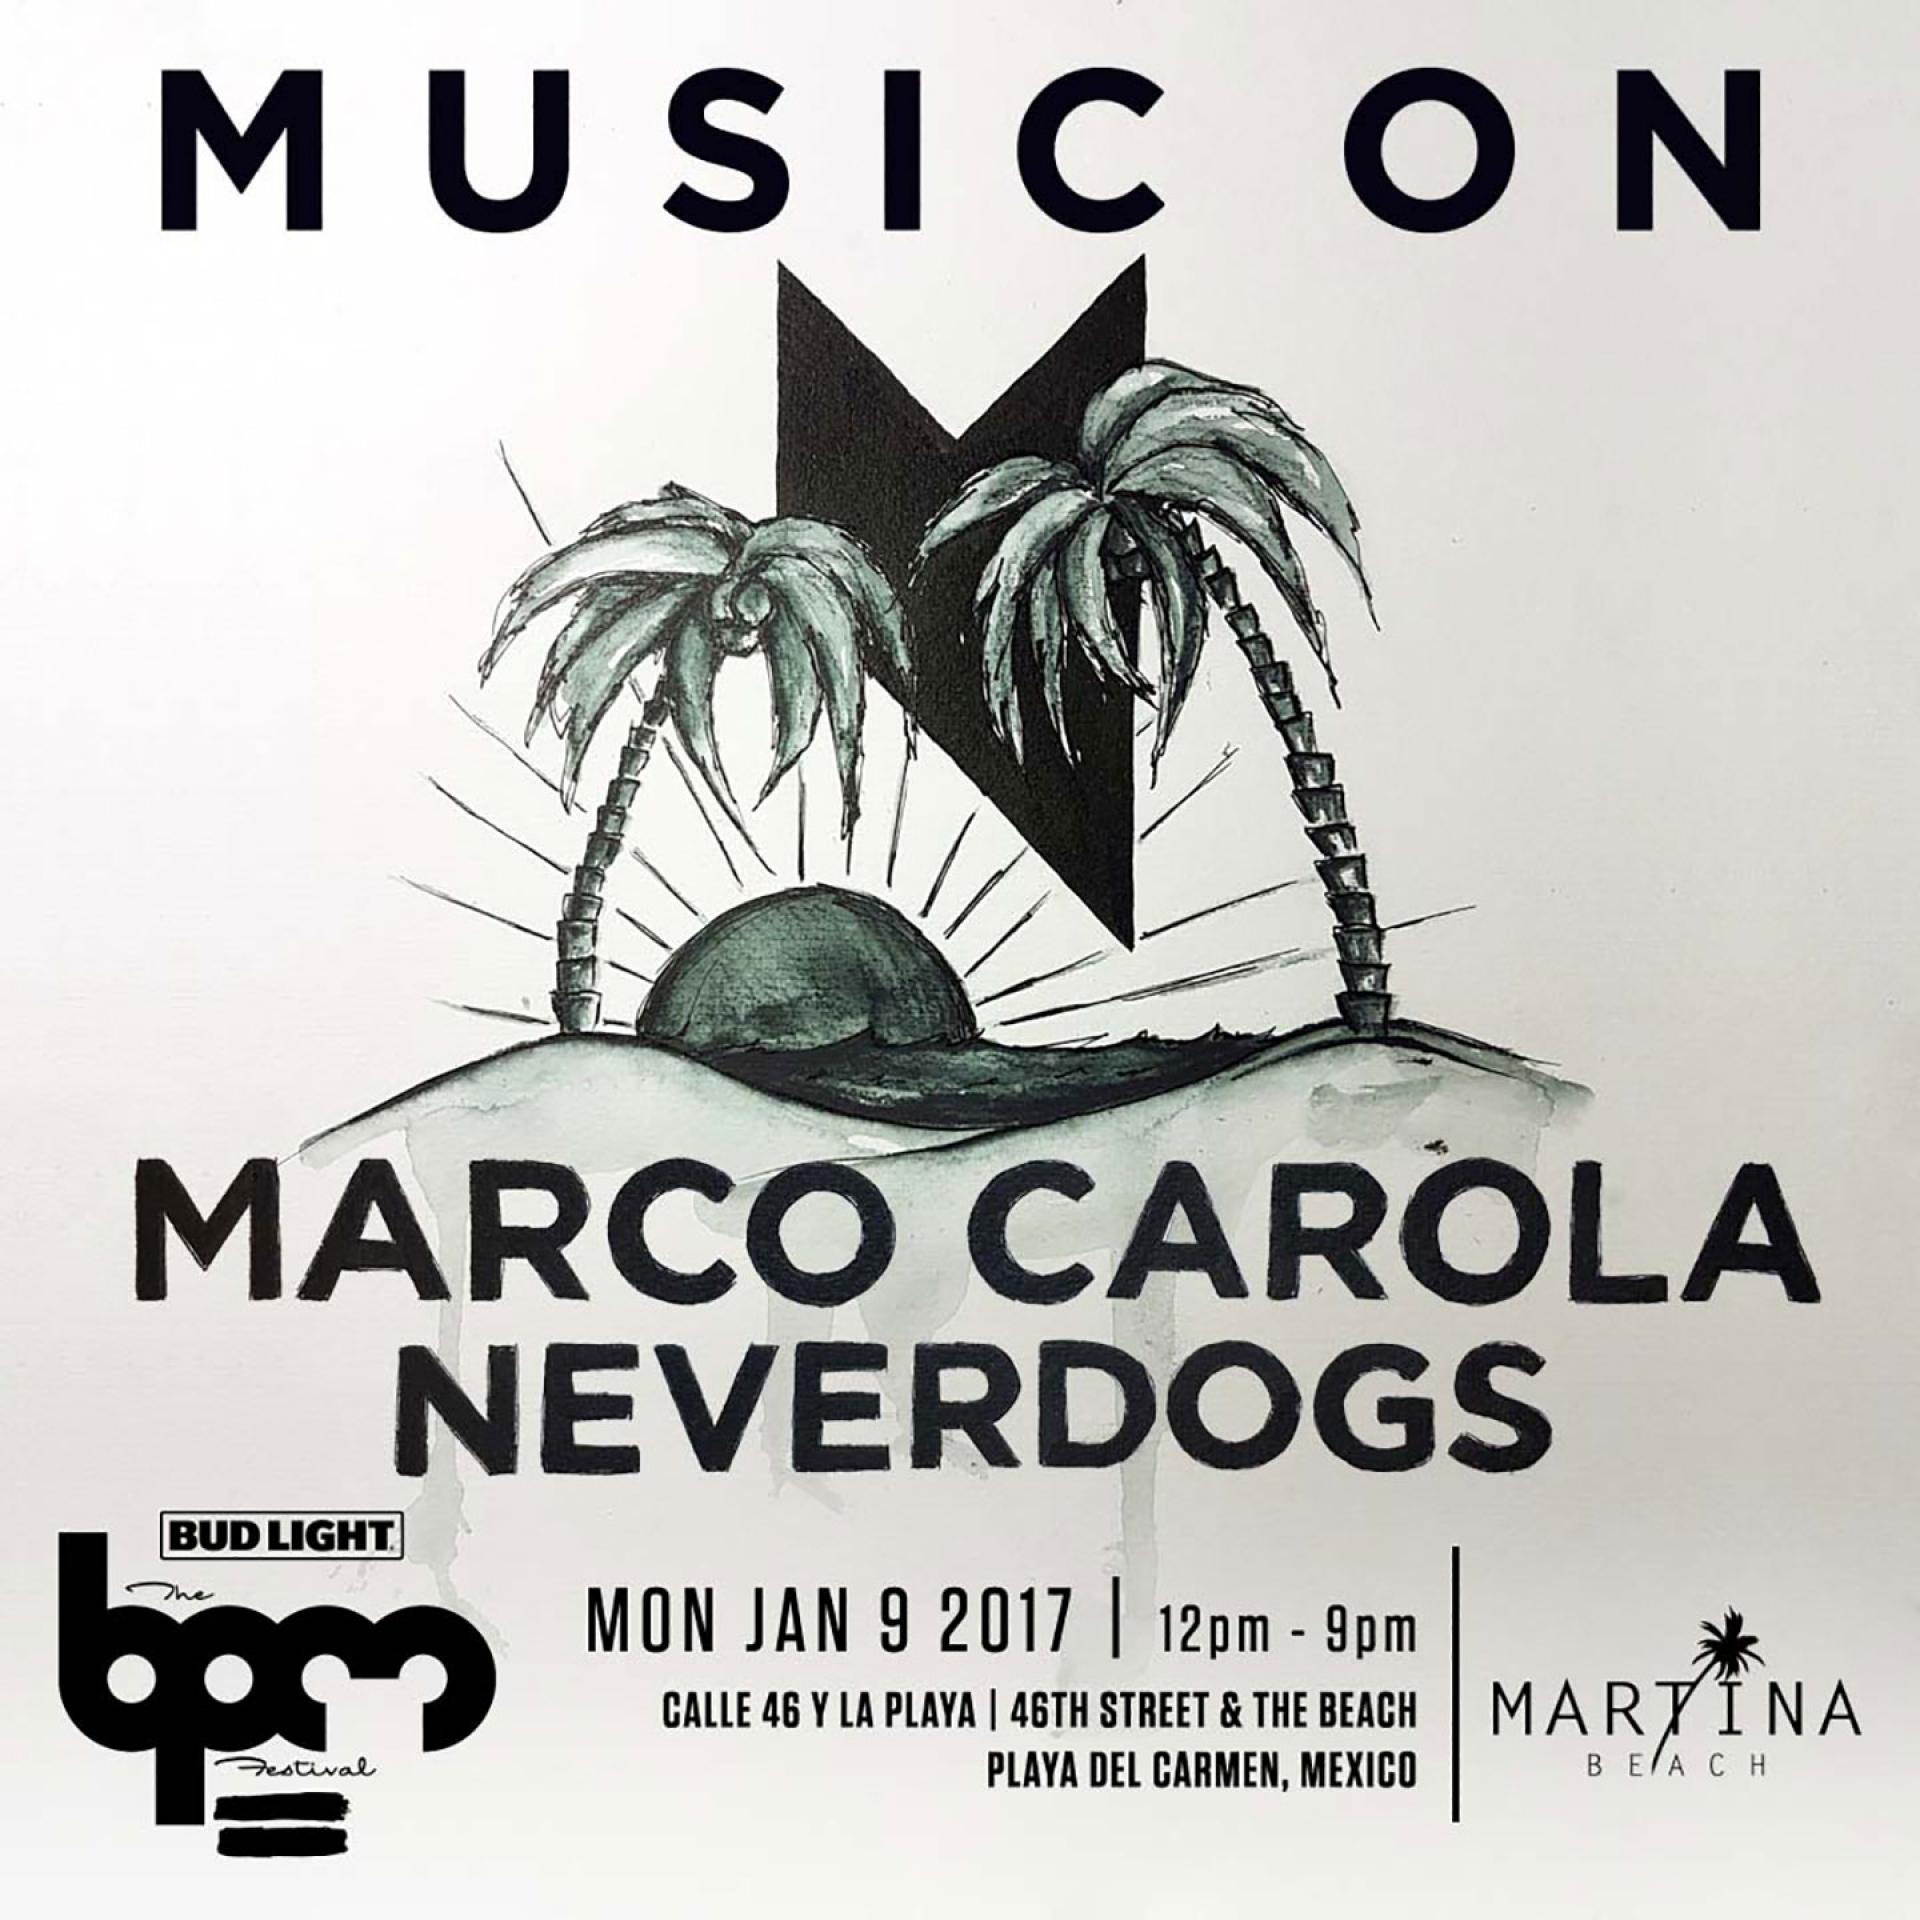 download → Neverdogs - live at Music On, Martina Beach (THE BPM 2017, Mexico) - 09-Jan-2017